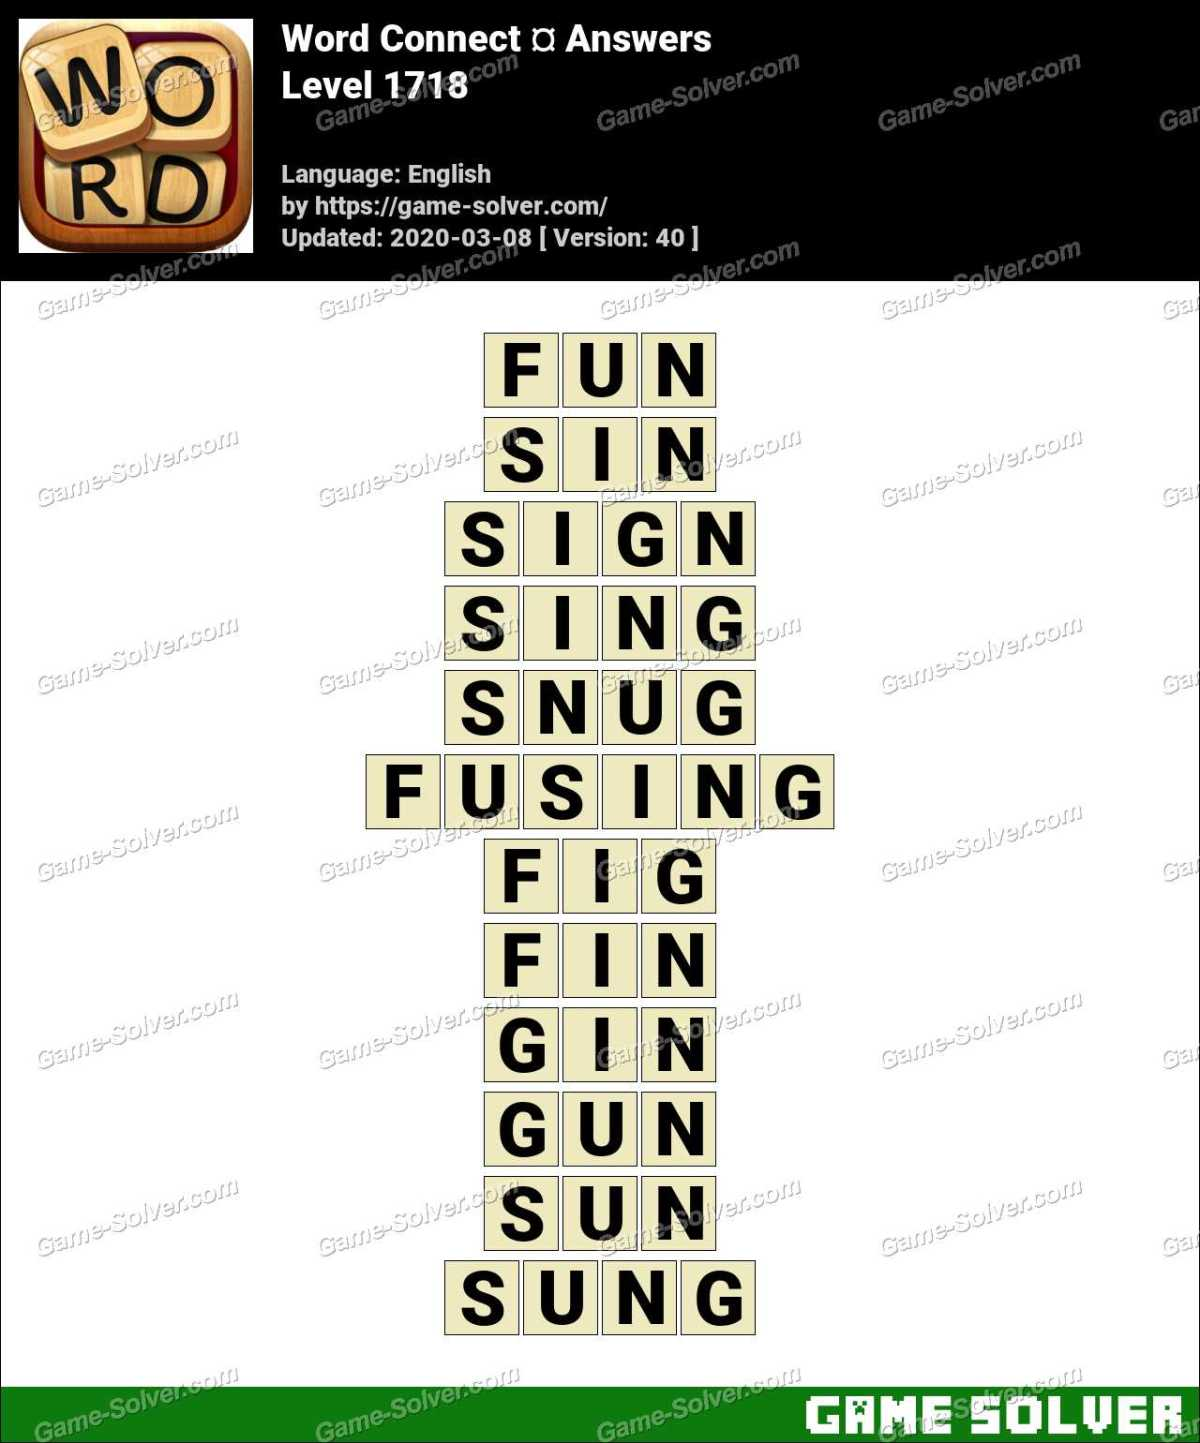 Word Connect Level 1718 Answers